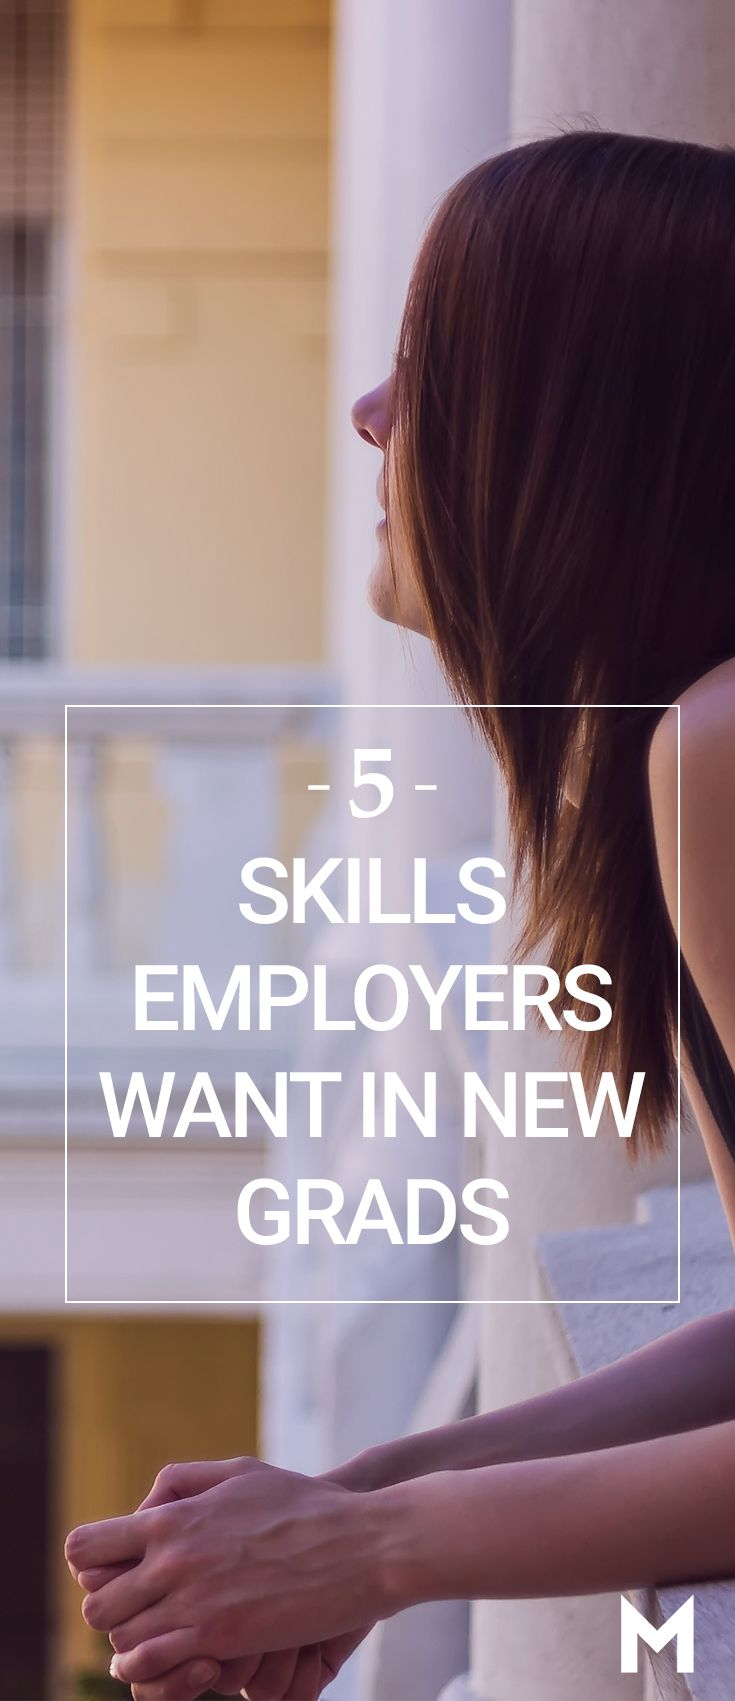 12 Best New Grad Images On Pinterest | Career Advice, Facts And High School